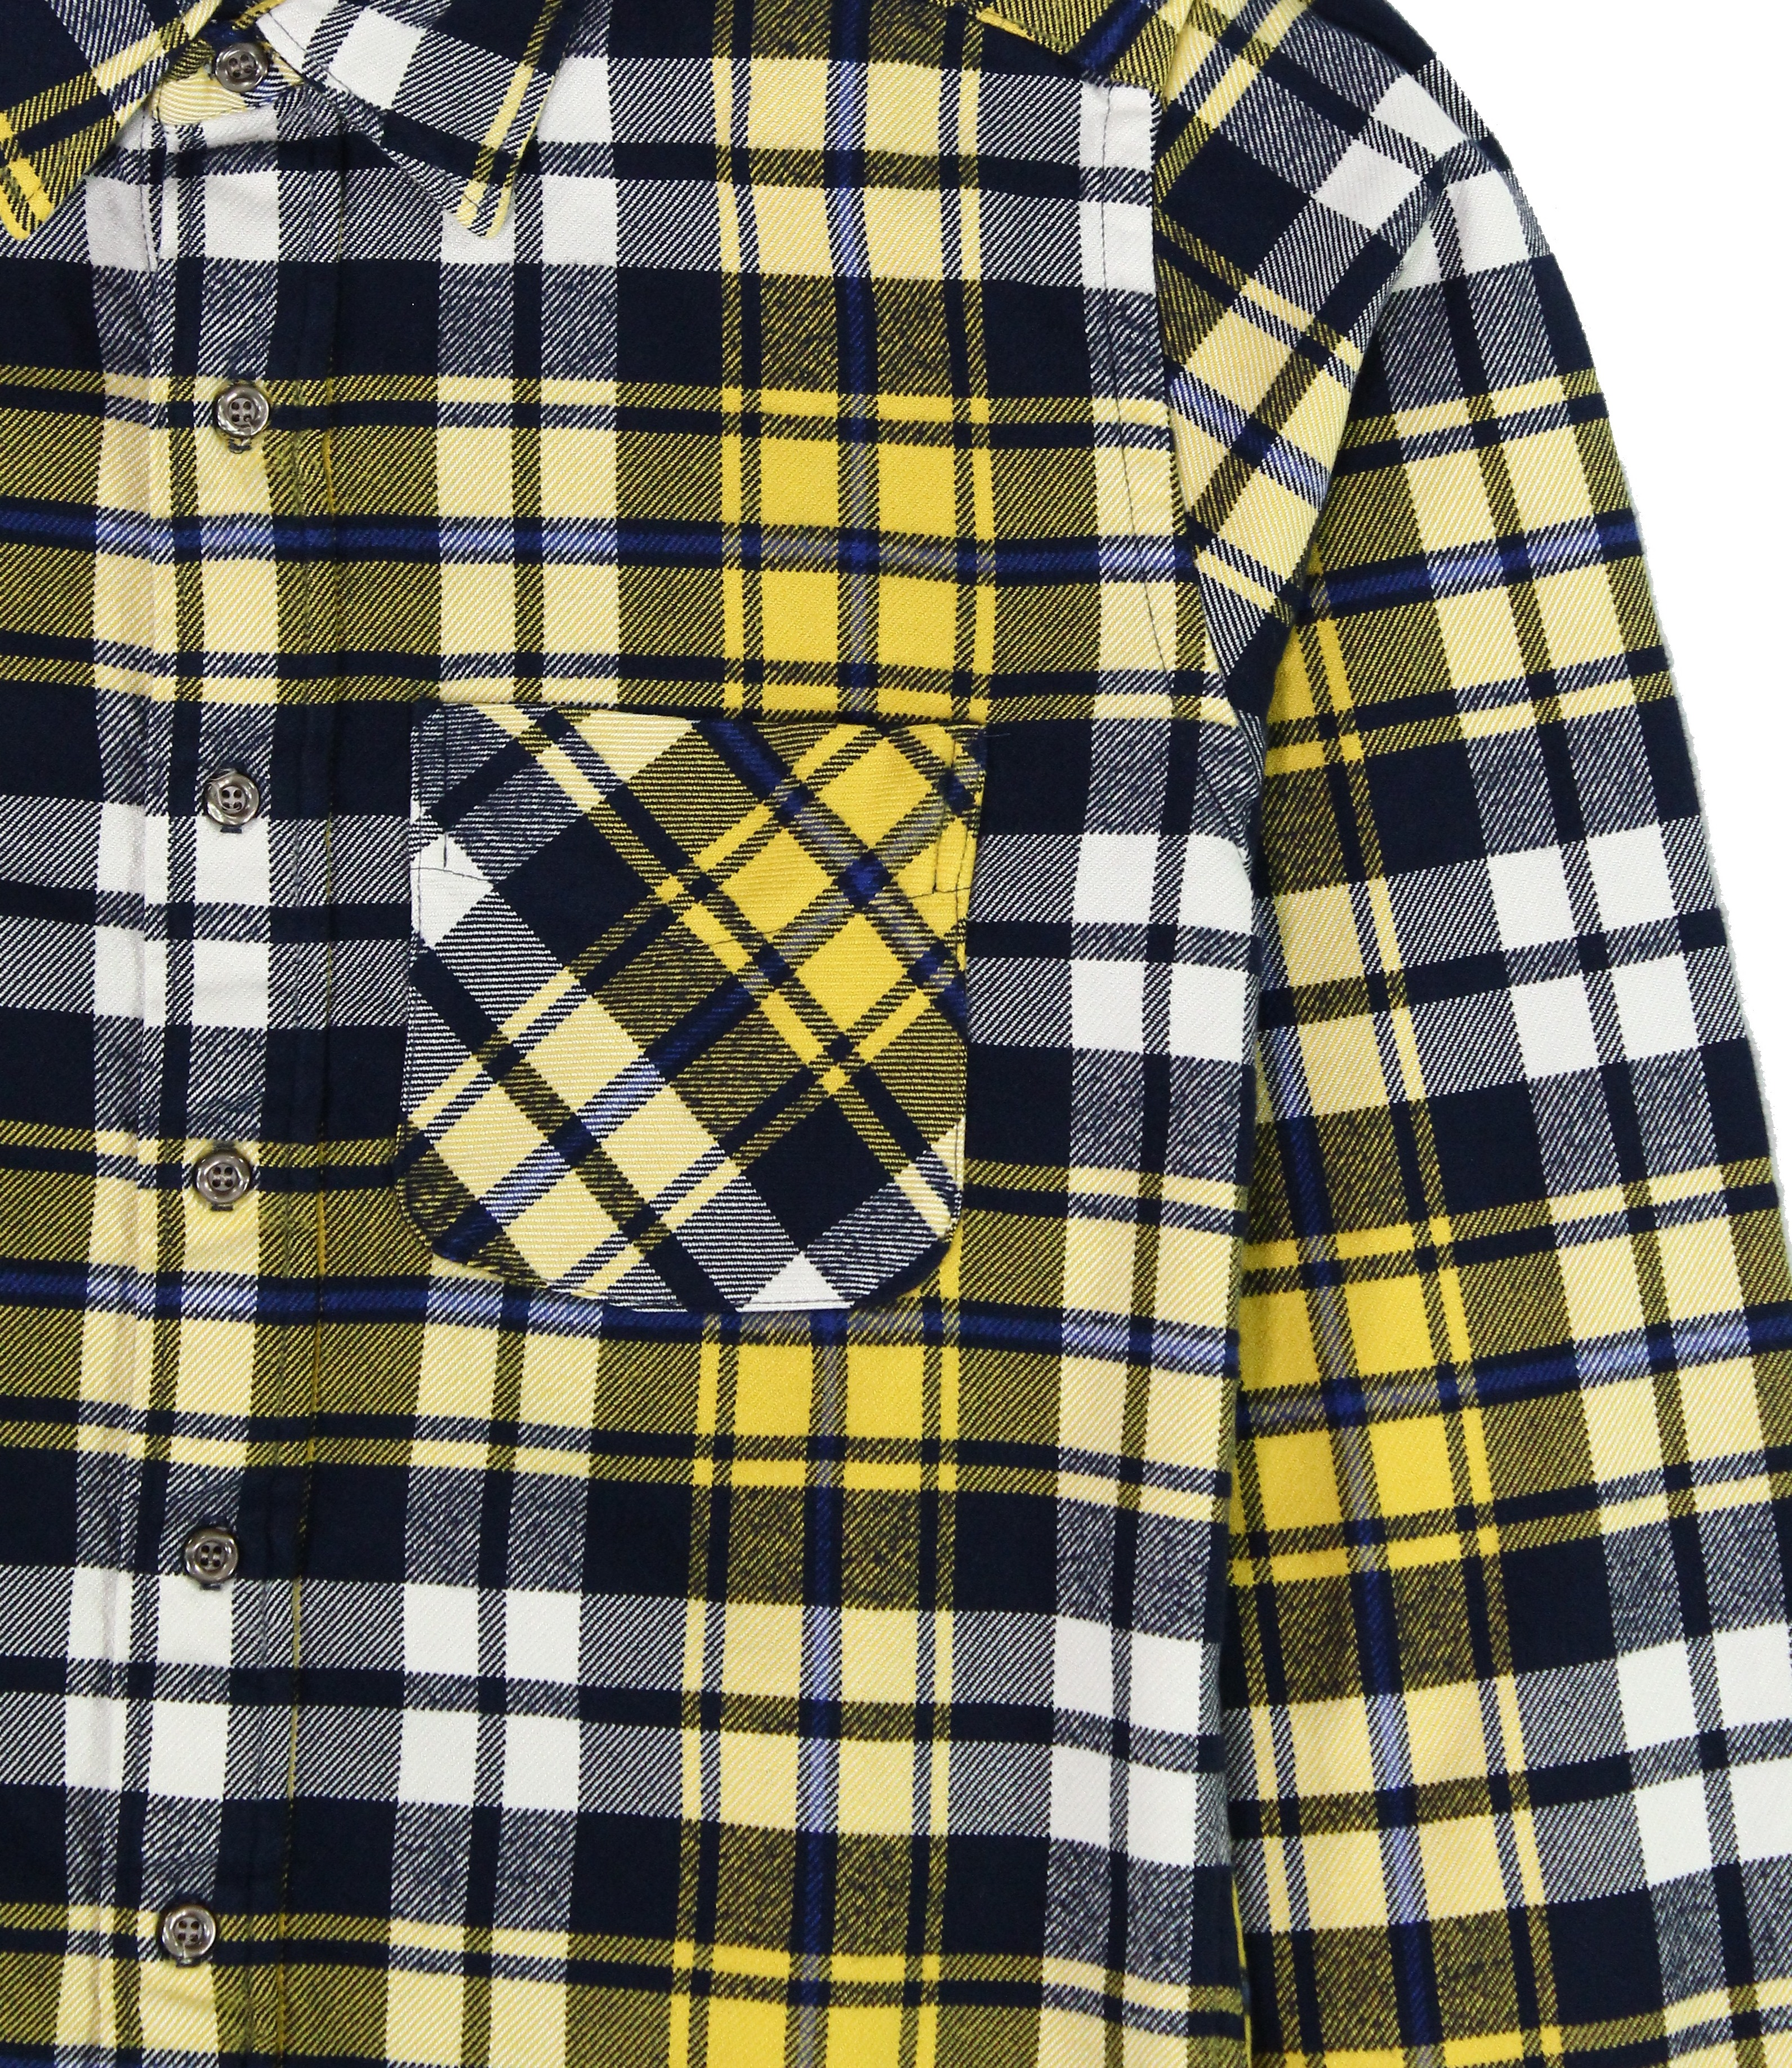 American-Apparel-NEW-Mens-Plaid-Flannel-Lumberjack-Classic-Fit-Button-Down-Shirt thumbnail 20